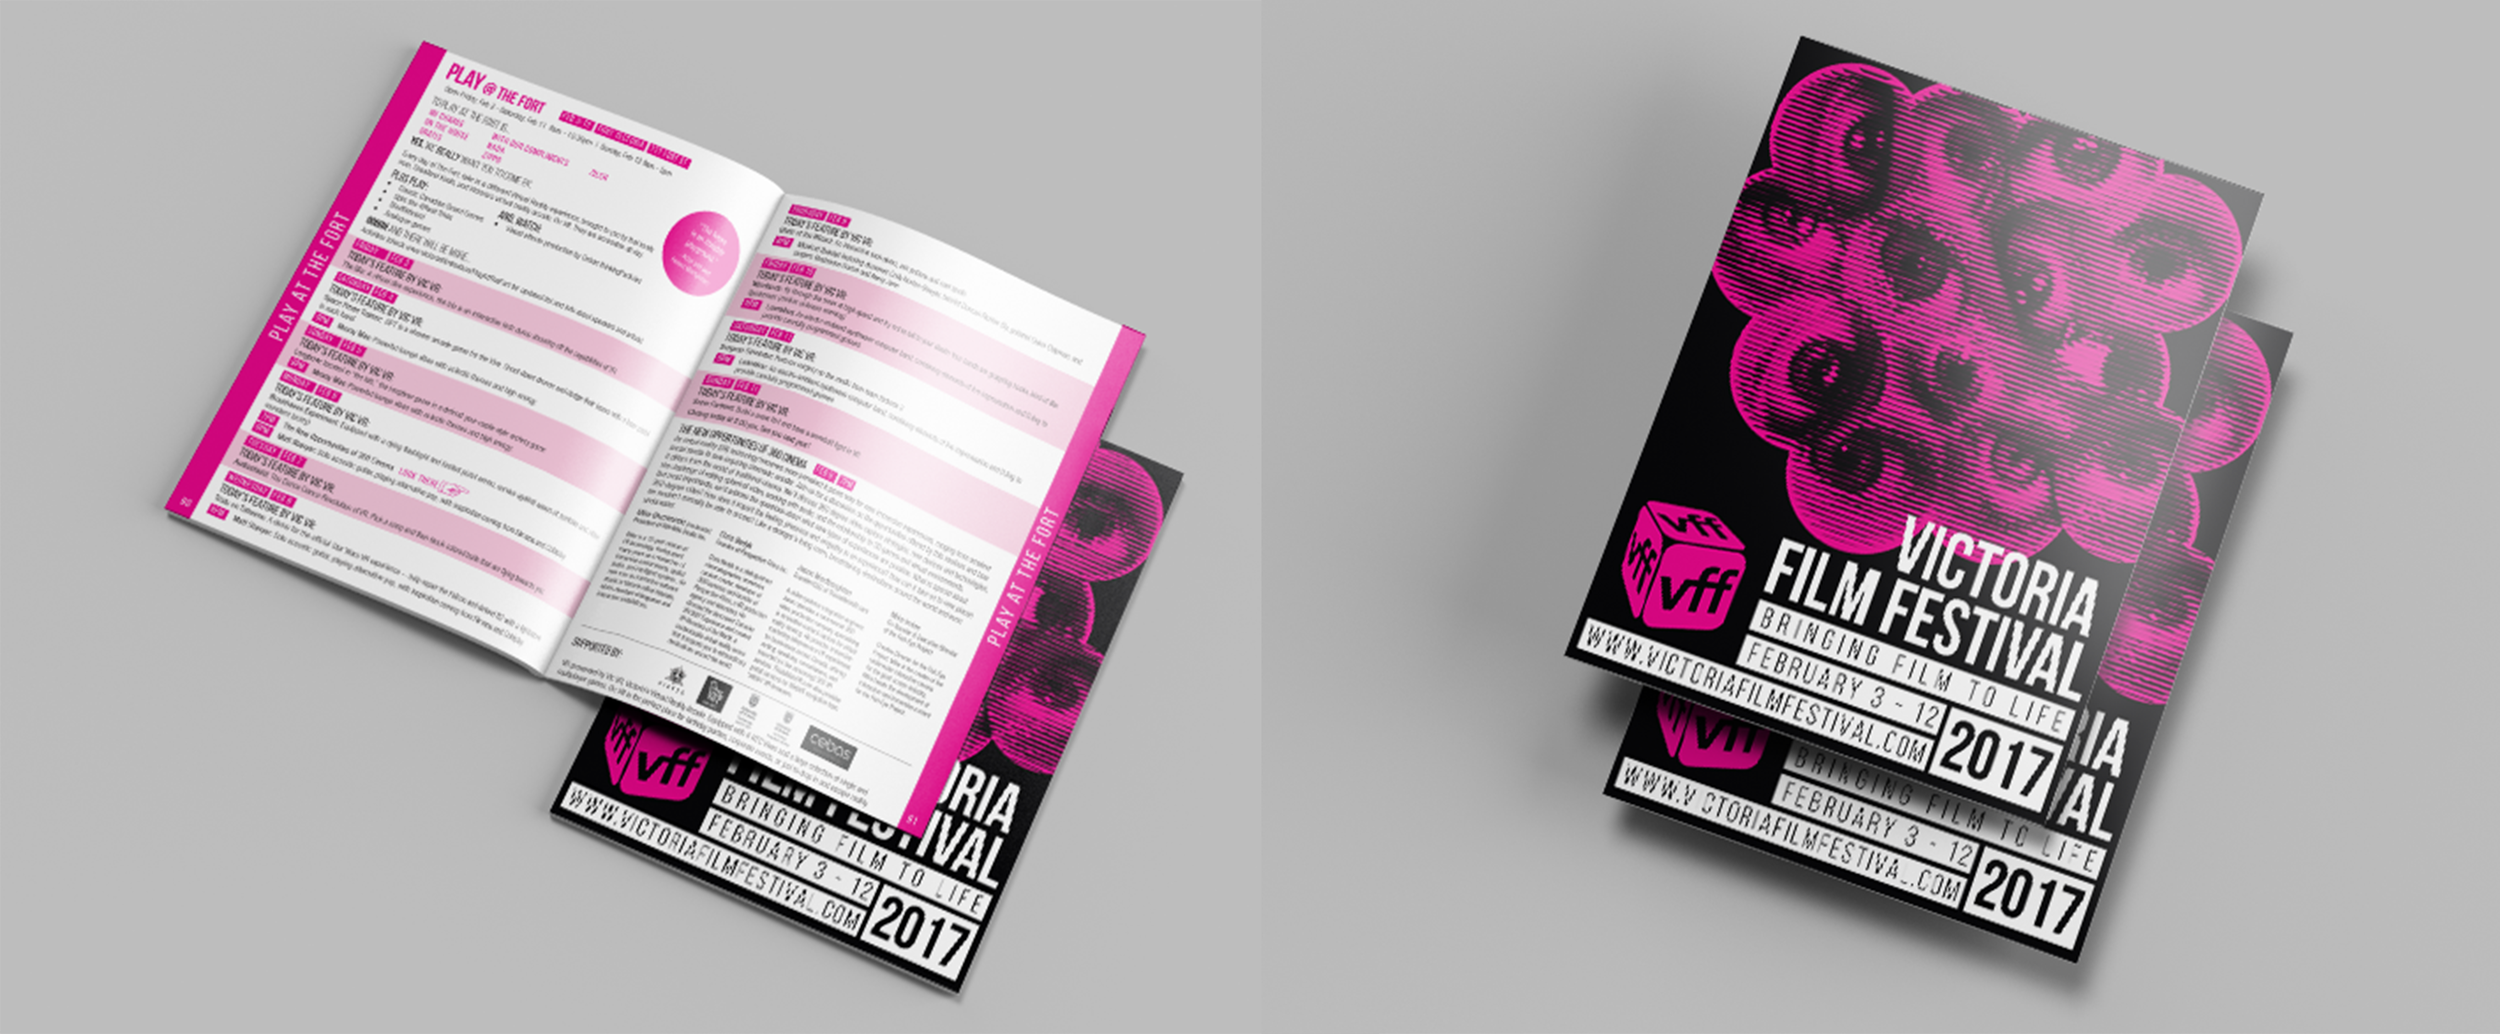 Our graphic design team also tackled the 110-page Program Guide for this year's Film Festival, complete with information on all the films being shown and a schedule of programming.